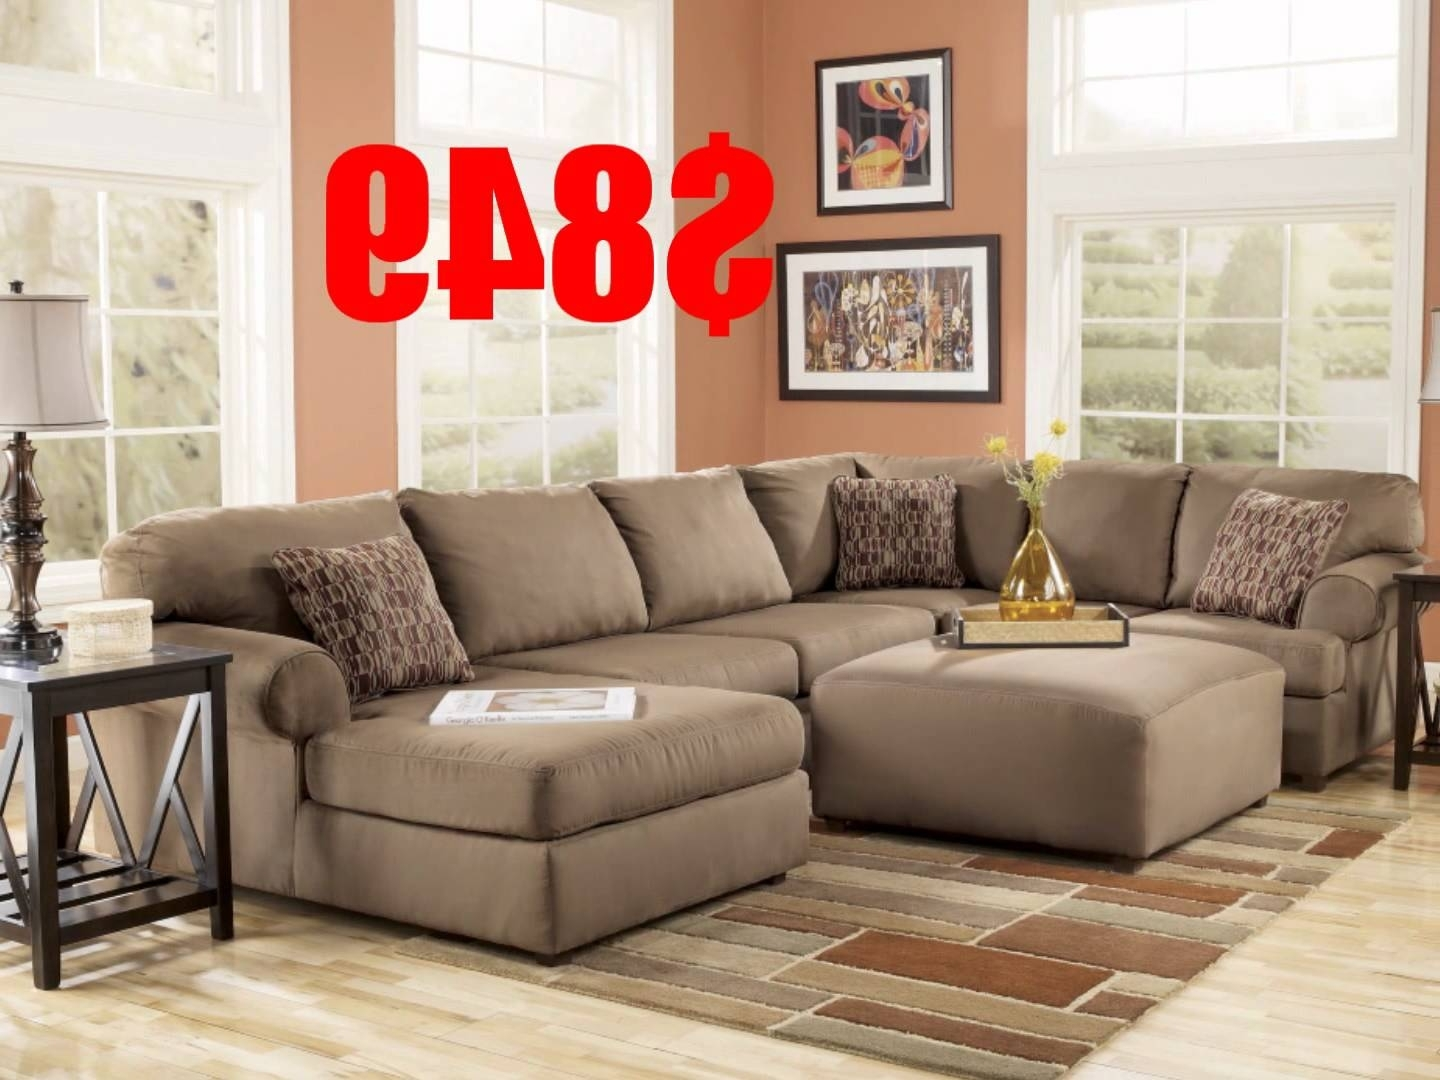 Ashley Furniture Brody Mocha Sectional – Youtube Within Newest Sectional Sofas At Ashley Furniture (View 4 of 20)